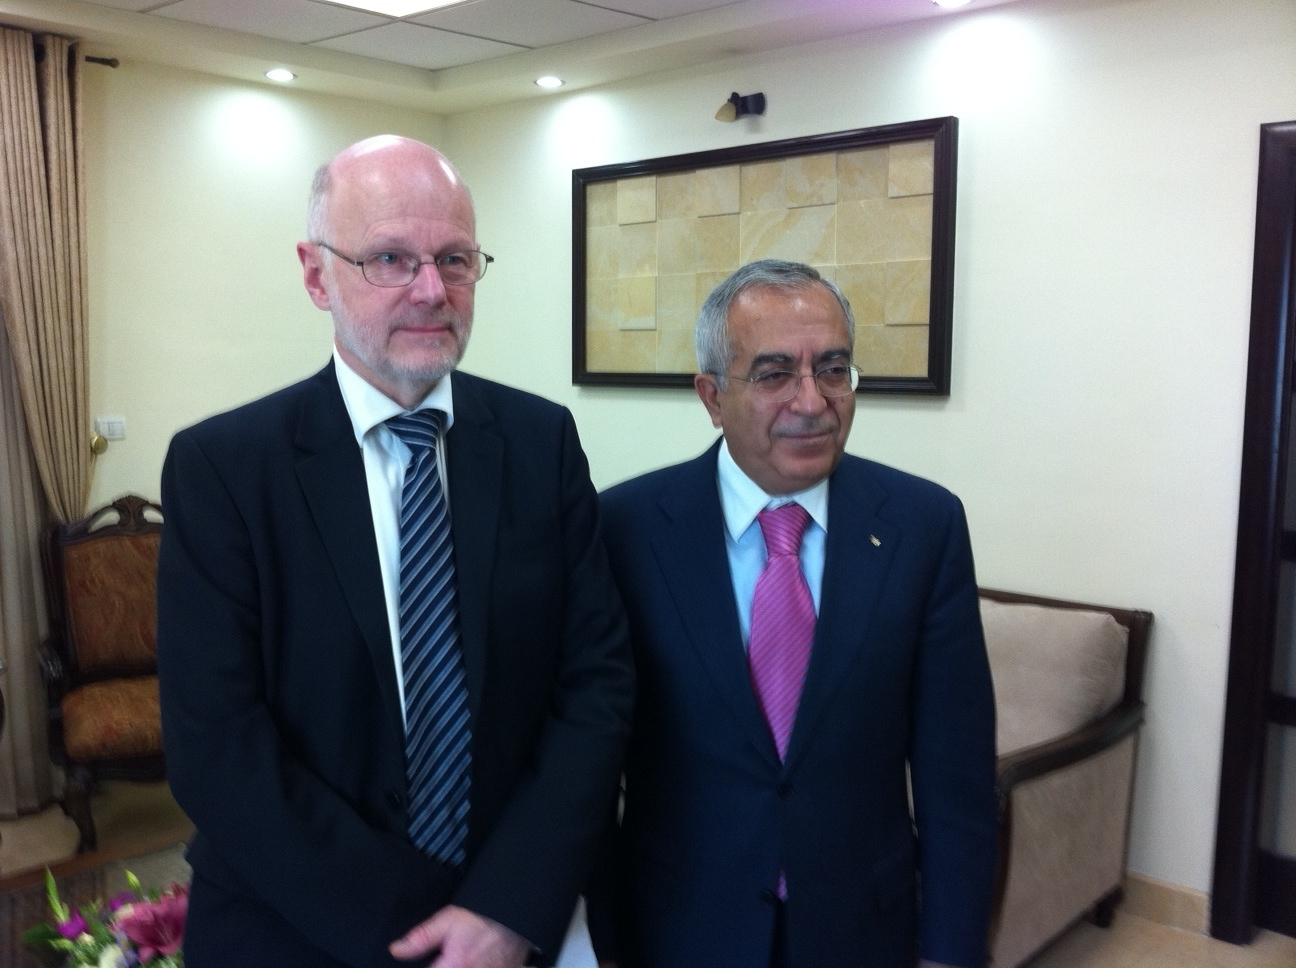 EESC President Staffan Nilsson and the Palestinian Prime Minister Salam Fayyad